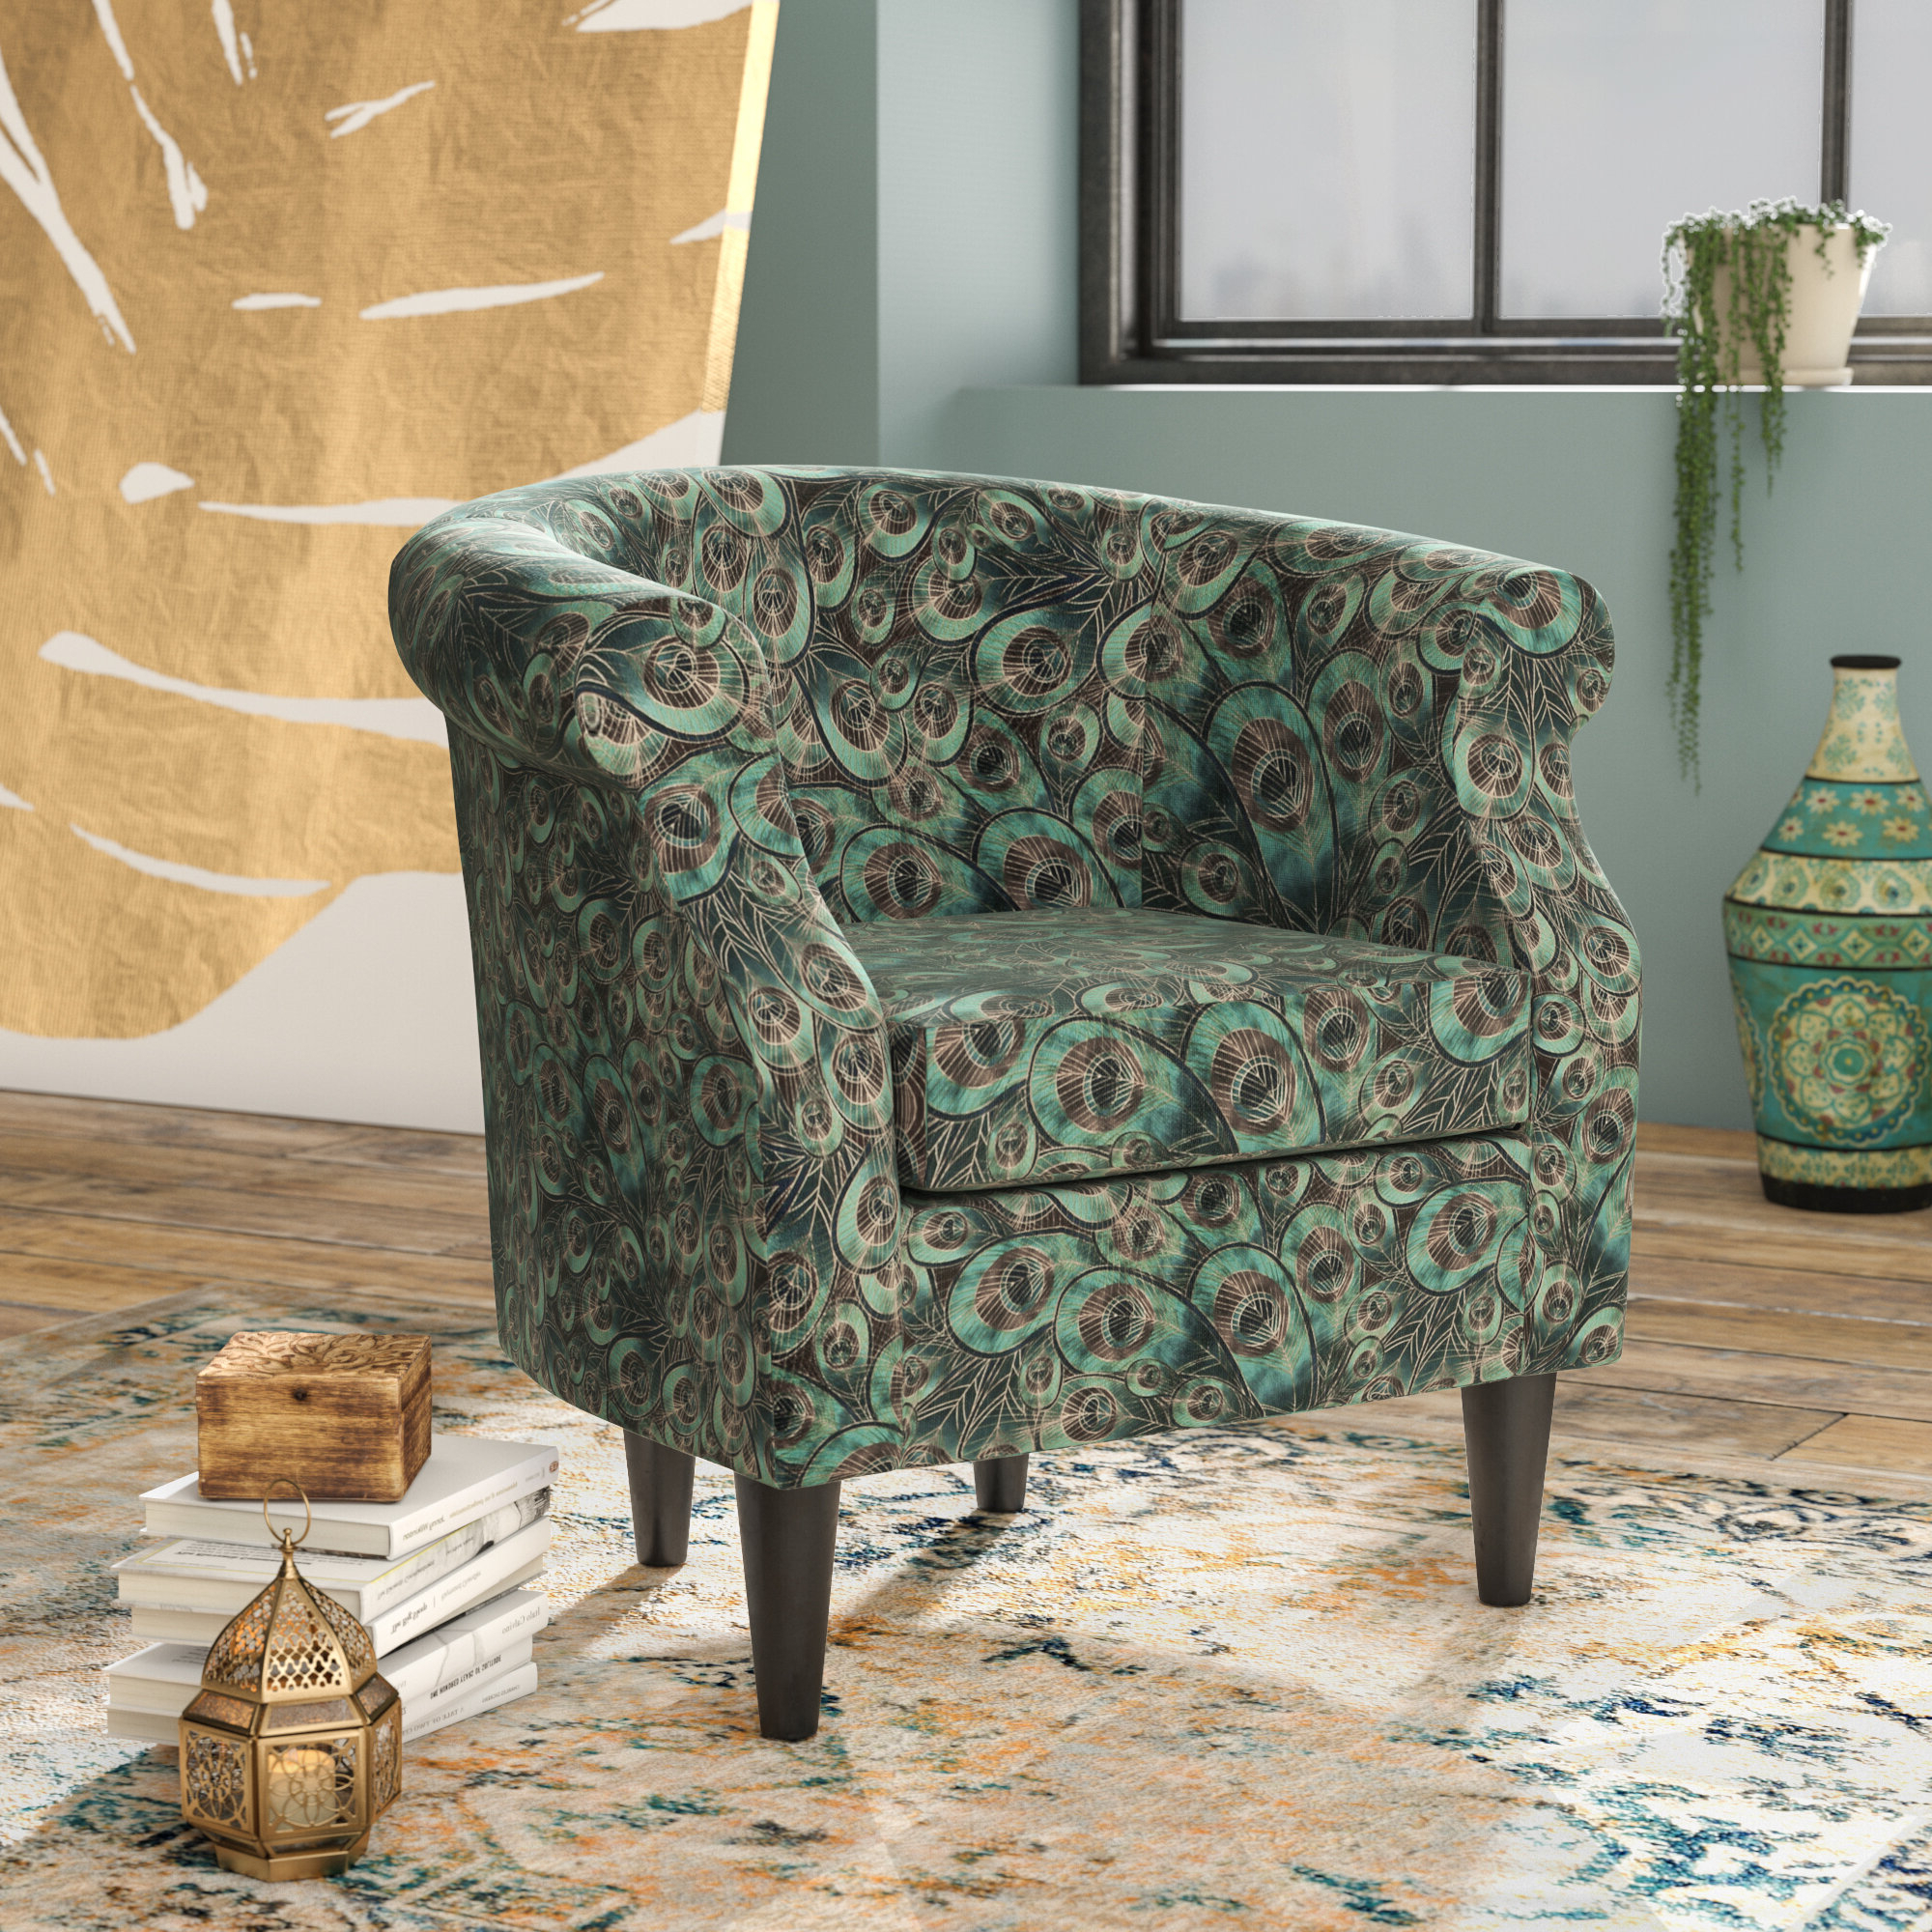 Ronda Barrel Chair With Newest Ronda Barrel Chairs (View 5 of 20)